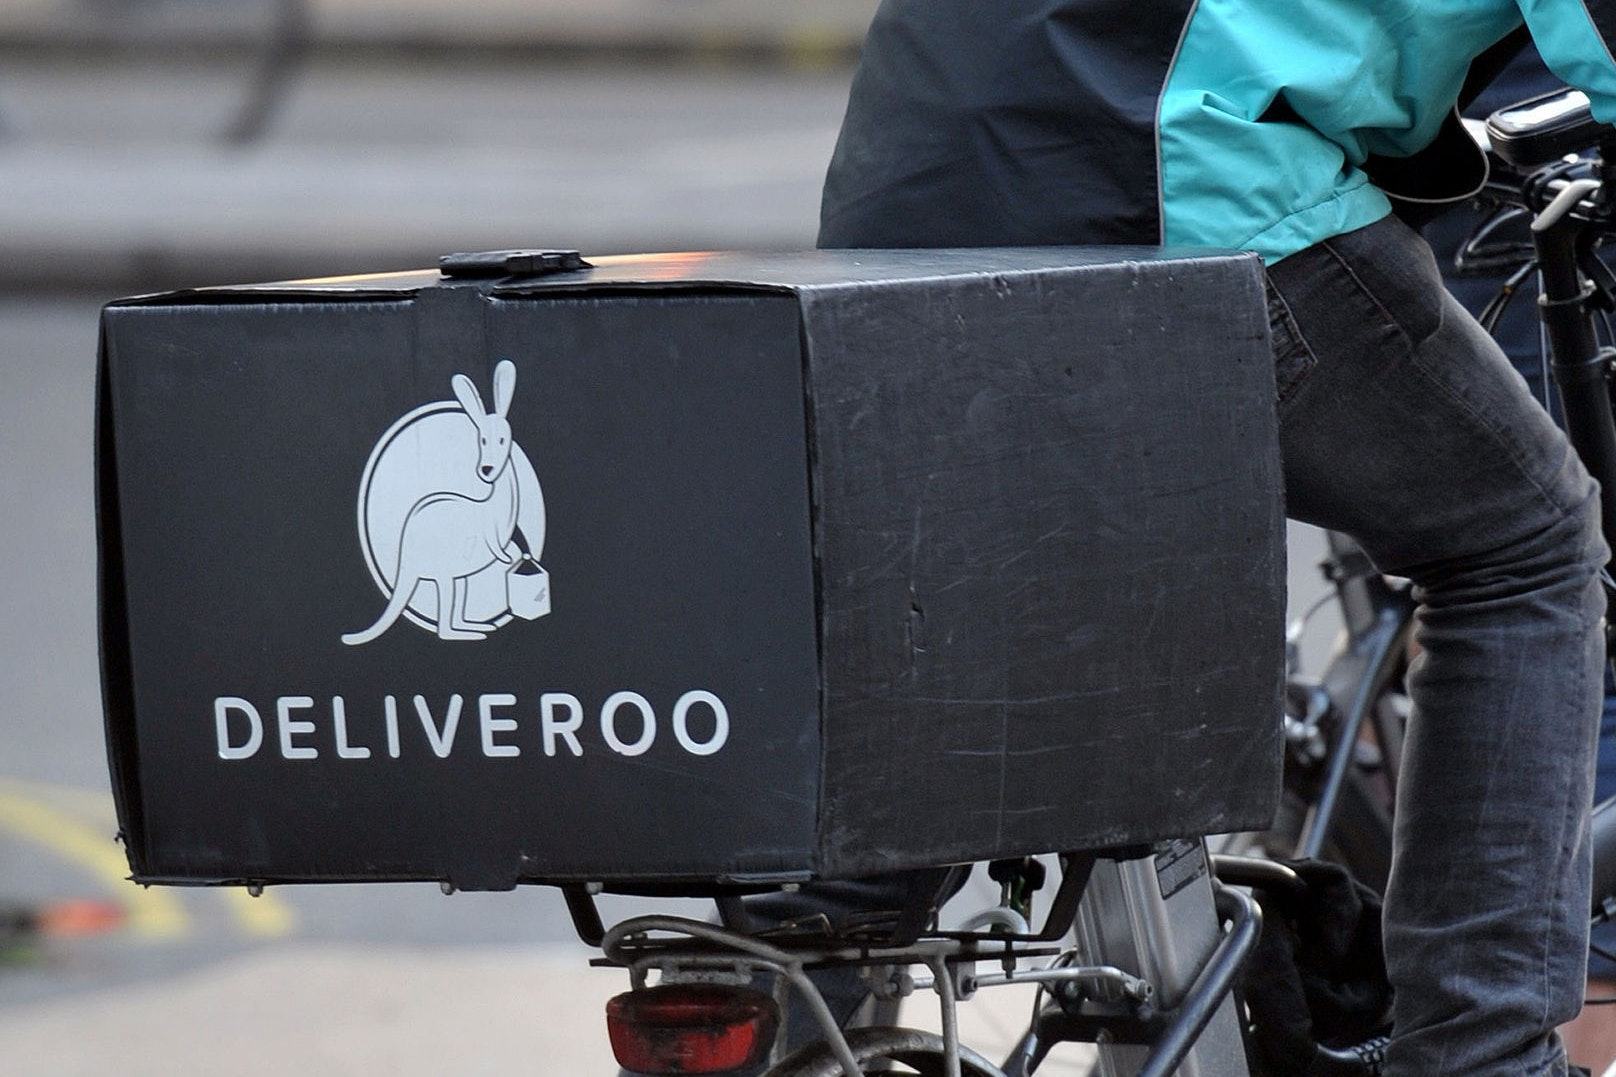 Trade union goes to High Court for Deliveroo riders' bargaining rights